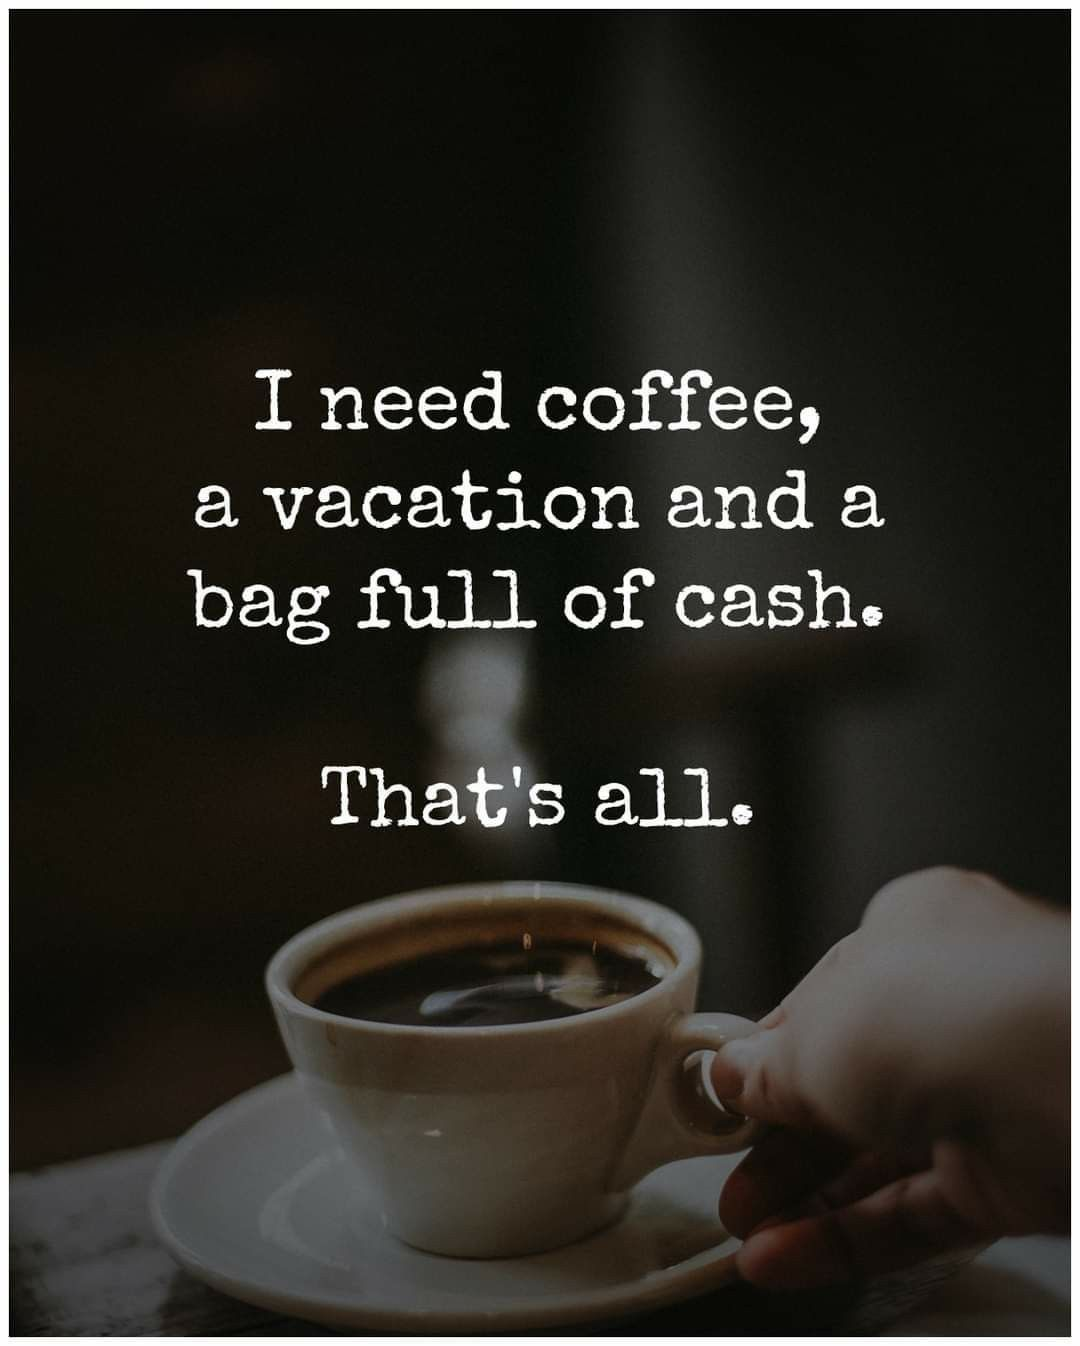 I Need Coffee A Vacation A Bag Full Of Cash And My Kids That Is All In 2021 Funny Coffee Quotes Coffee Meme Coffee Obsession